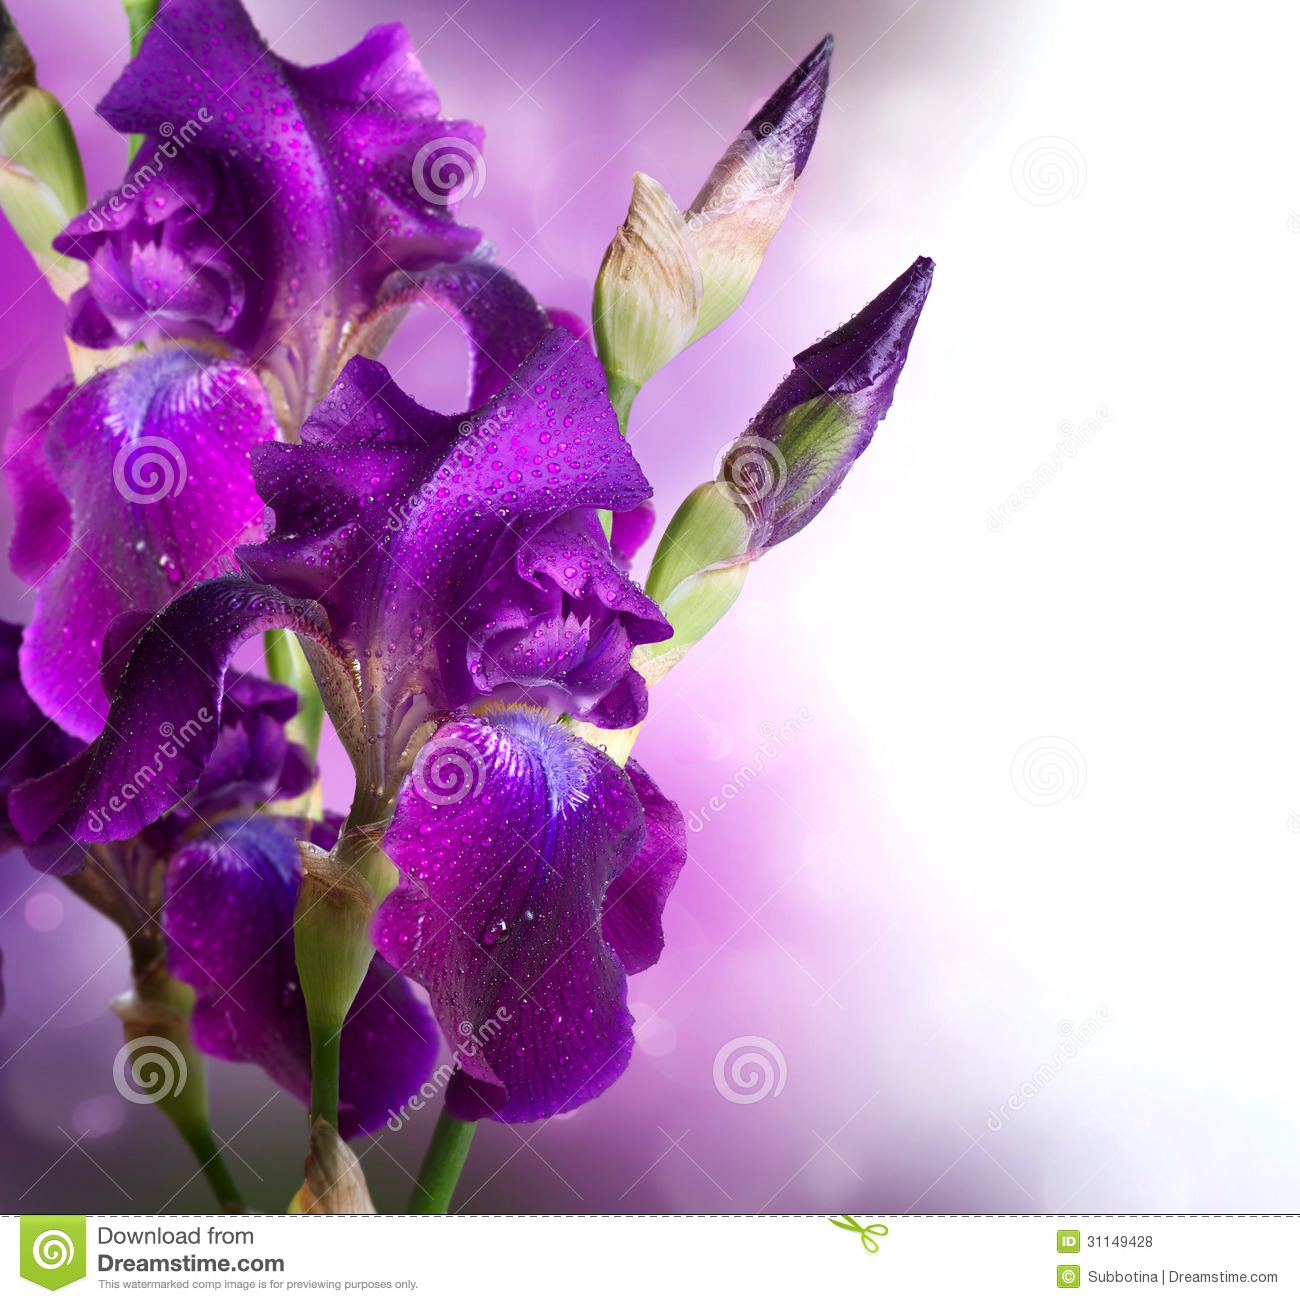 Iris Flowers Art Design Royalty Free Stock Photos - Image: 31149428